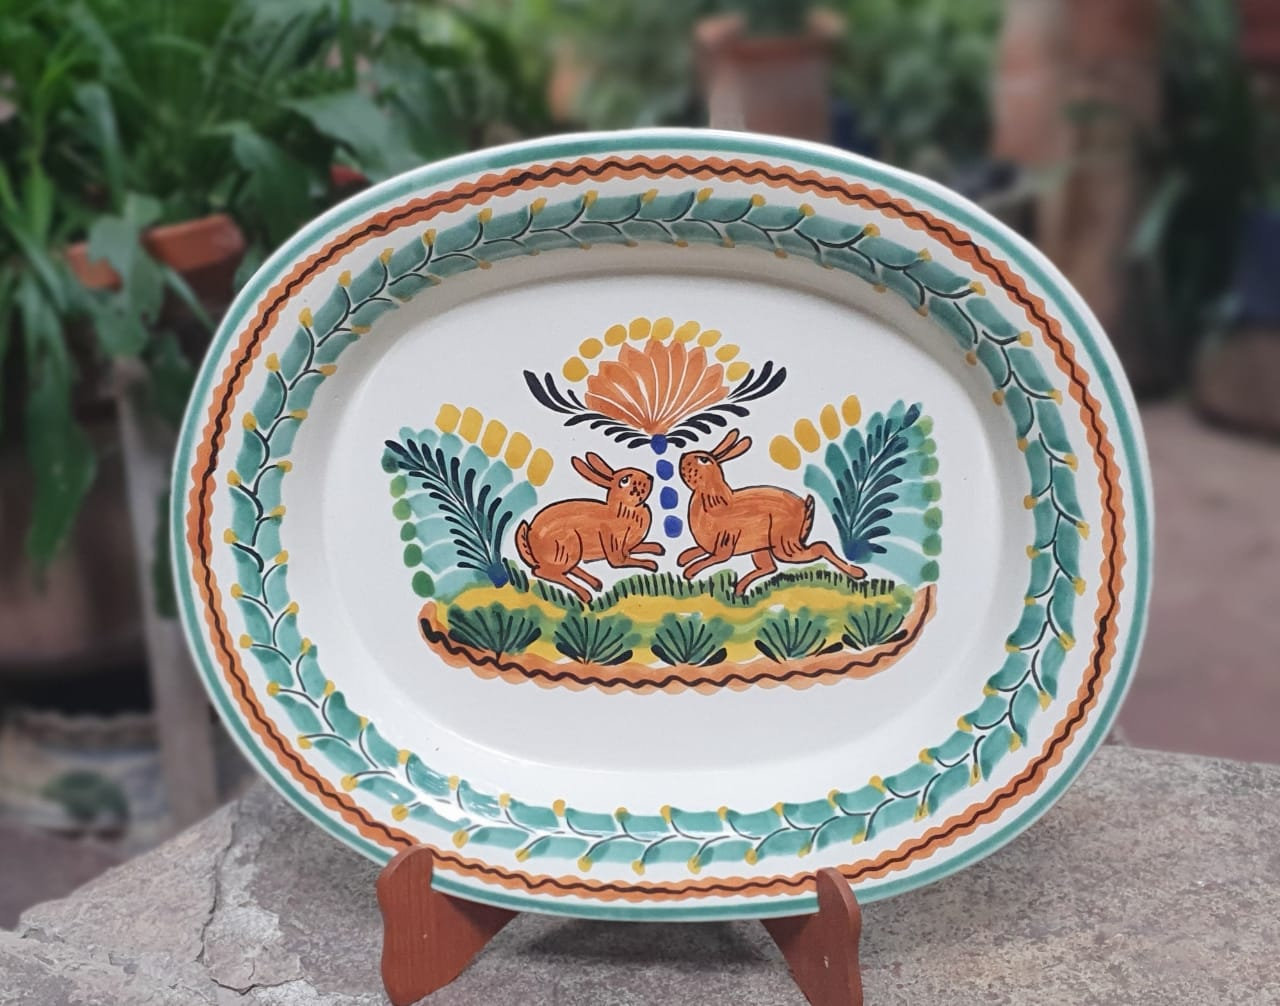 Rabbit Tray Semi Oval Serving Platter 13.4*16.9 in L Multi-colors